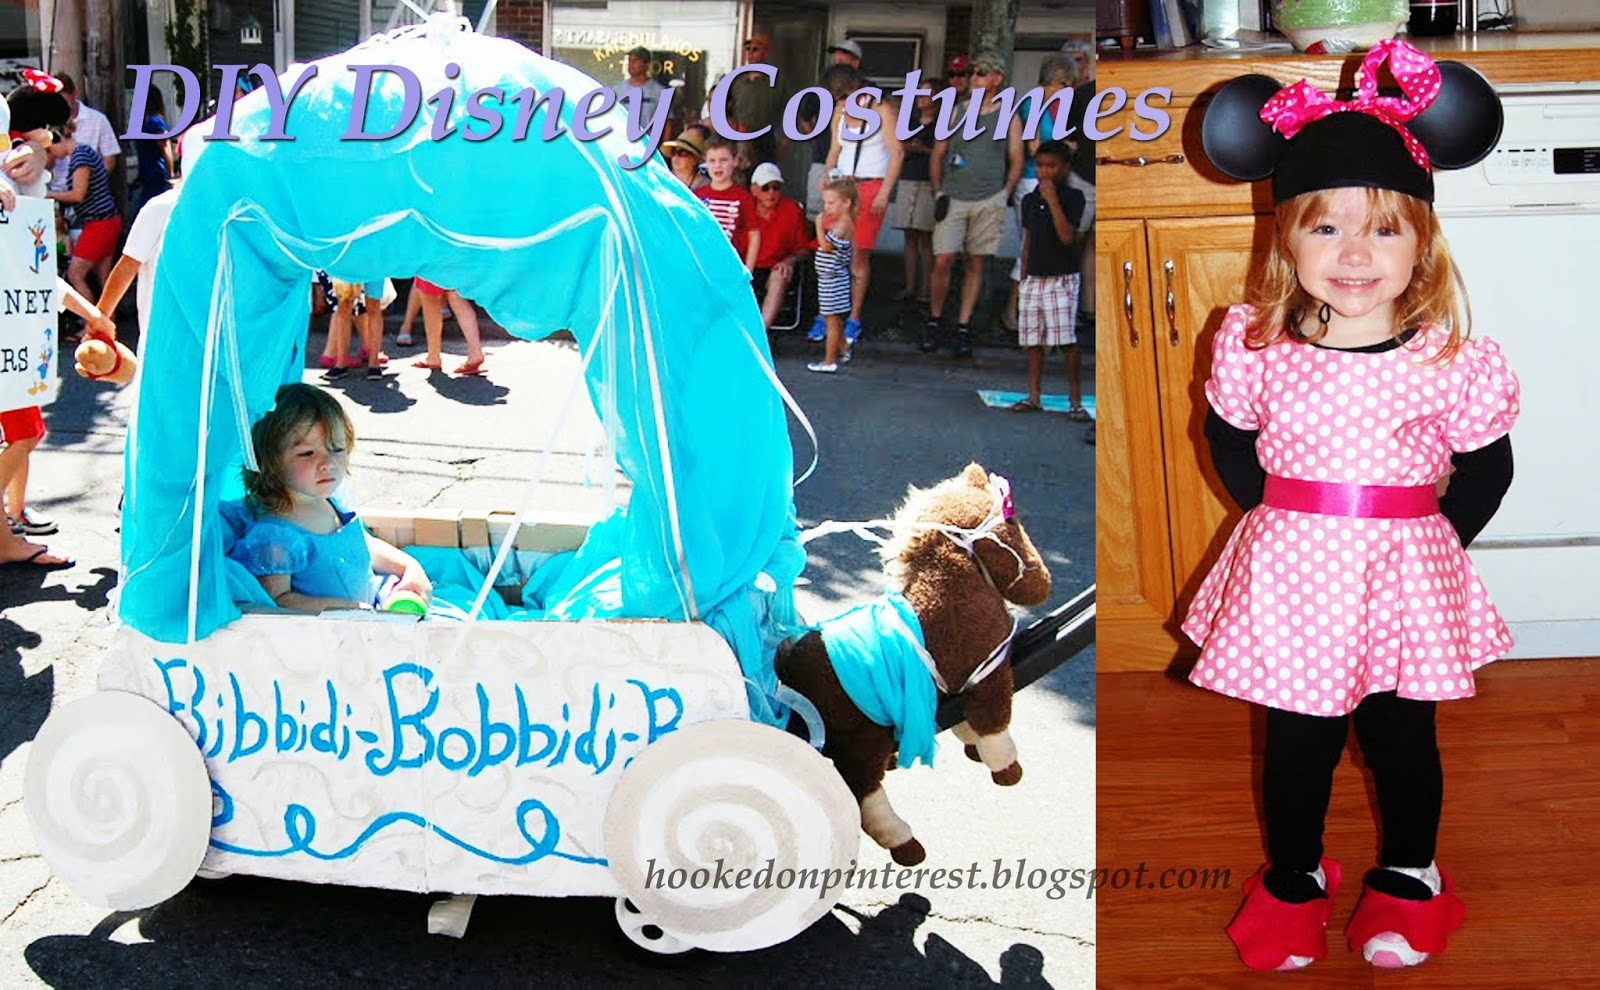 hooked on pinterest: diy disney halloween costumes